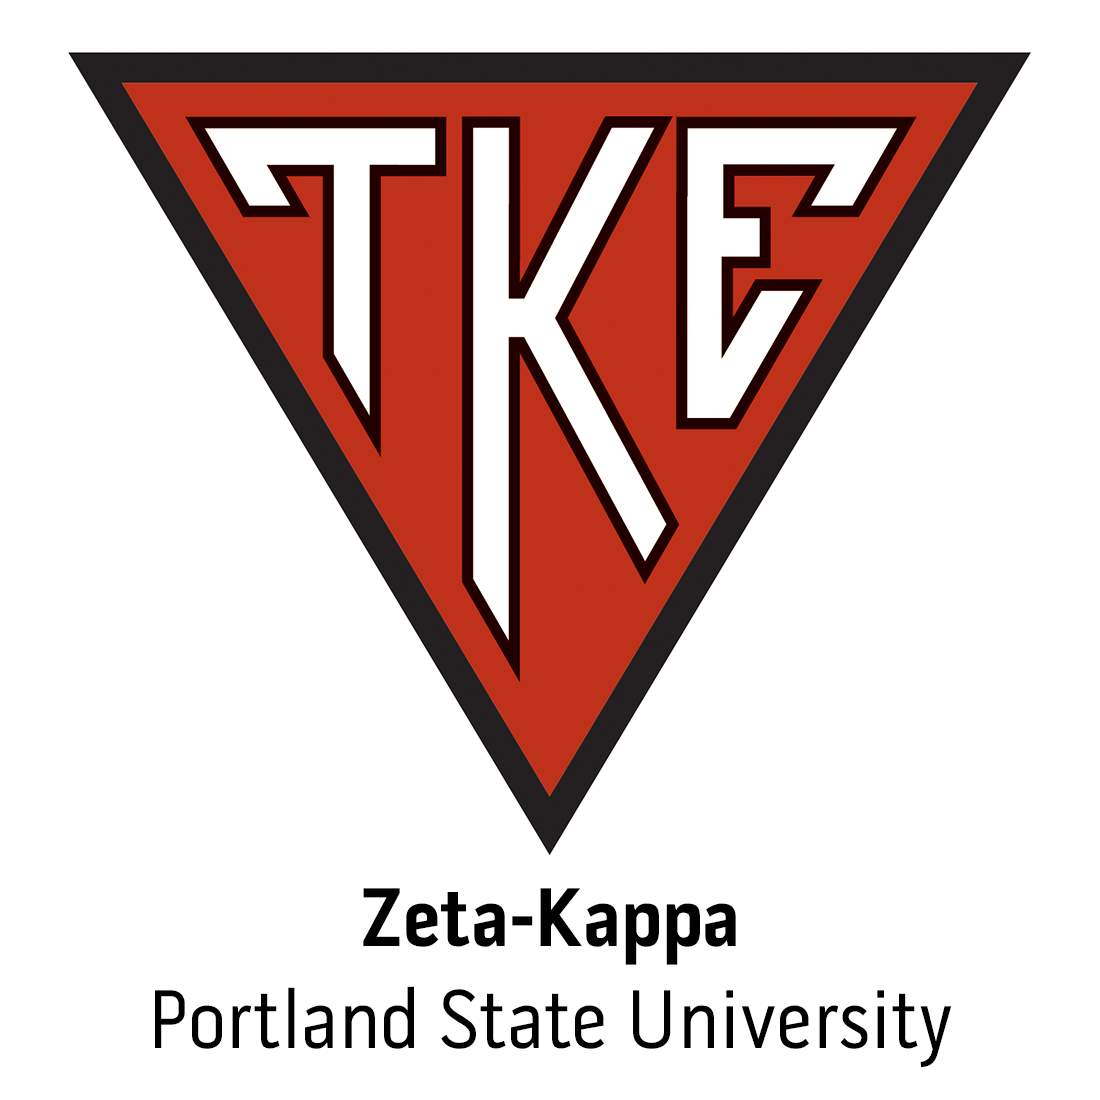 Zeta-Kappa Chapter at Portland State University